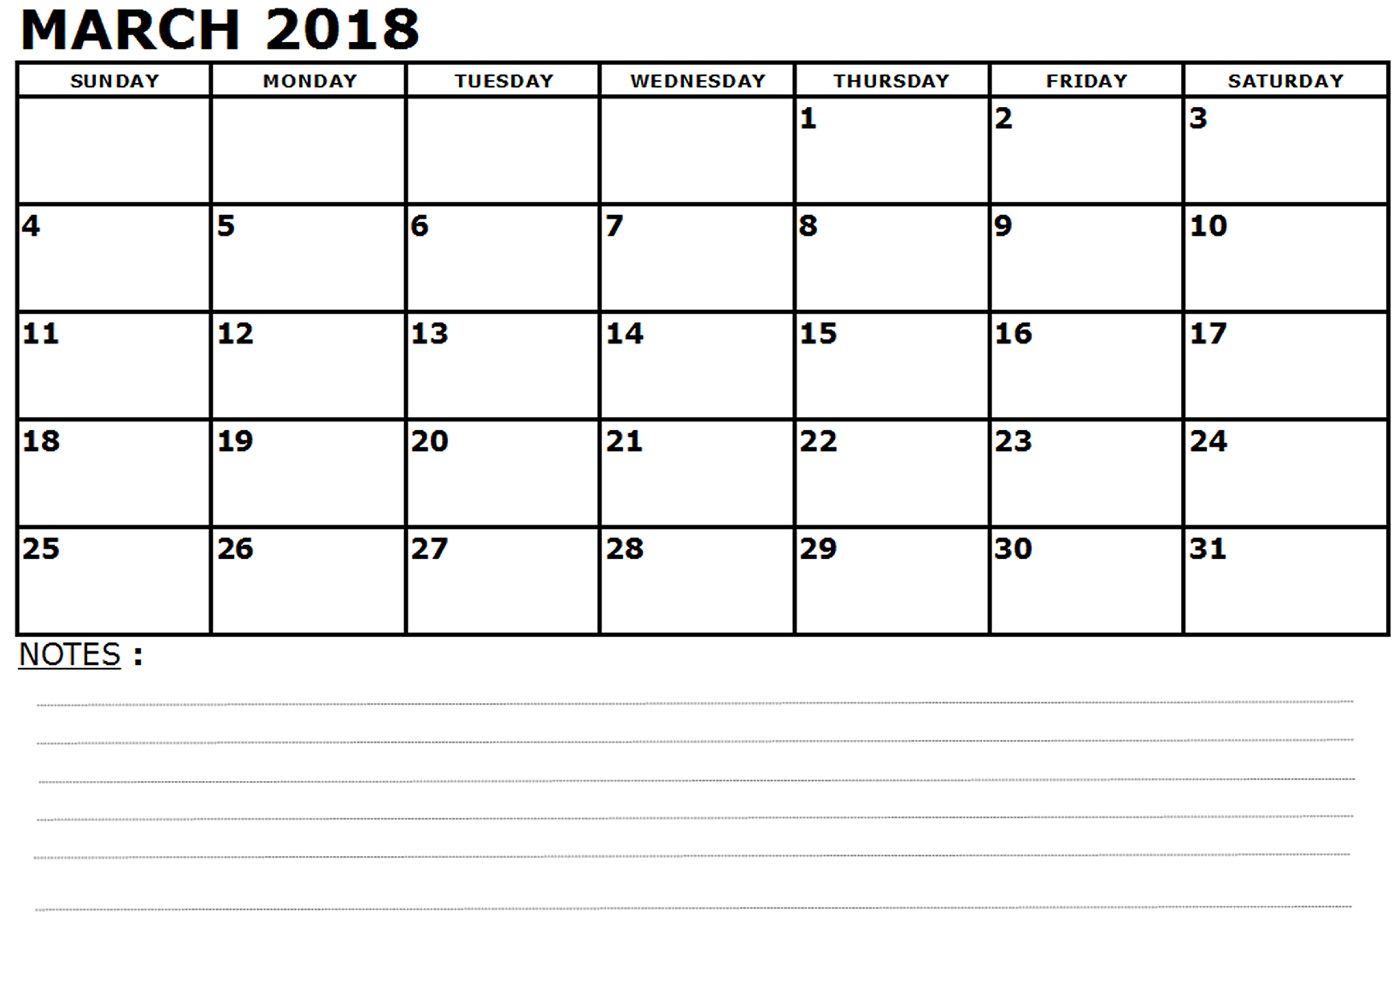 march calendar 2018 with notes